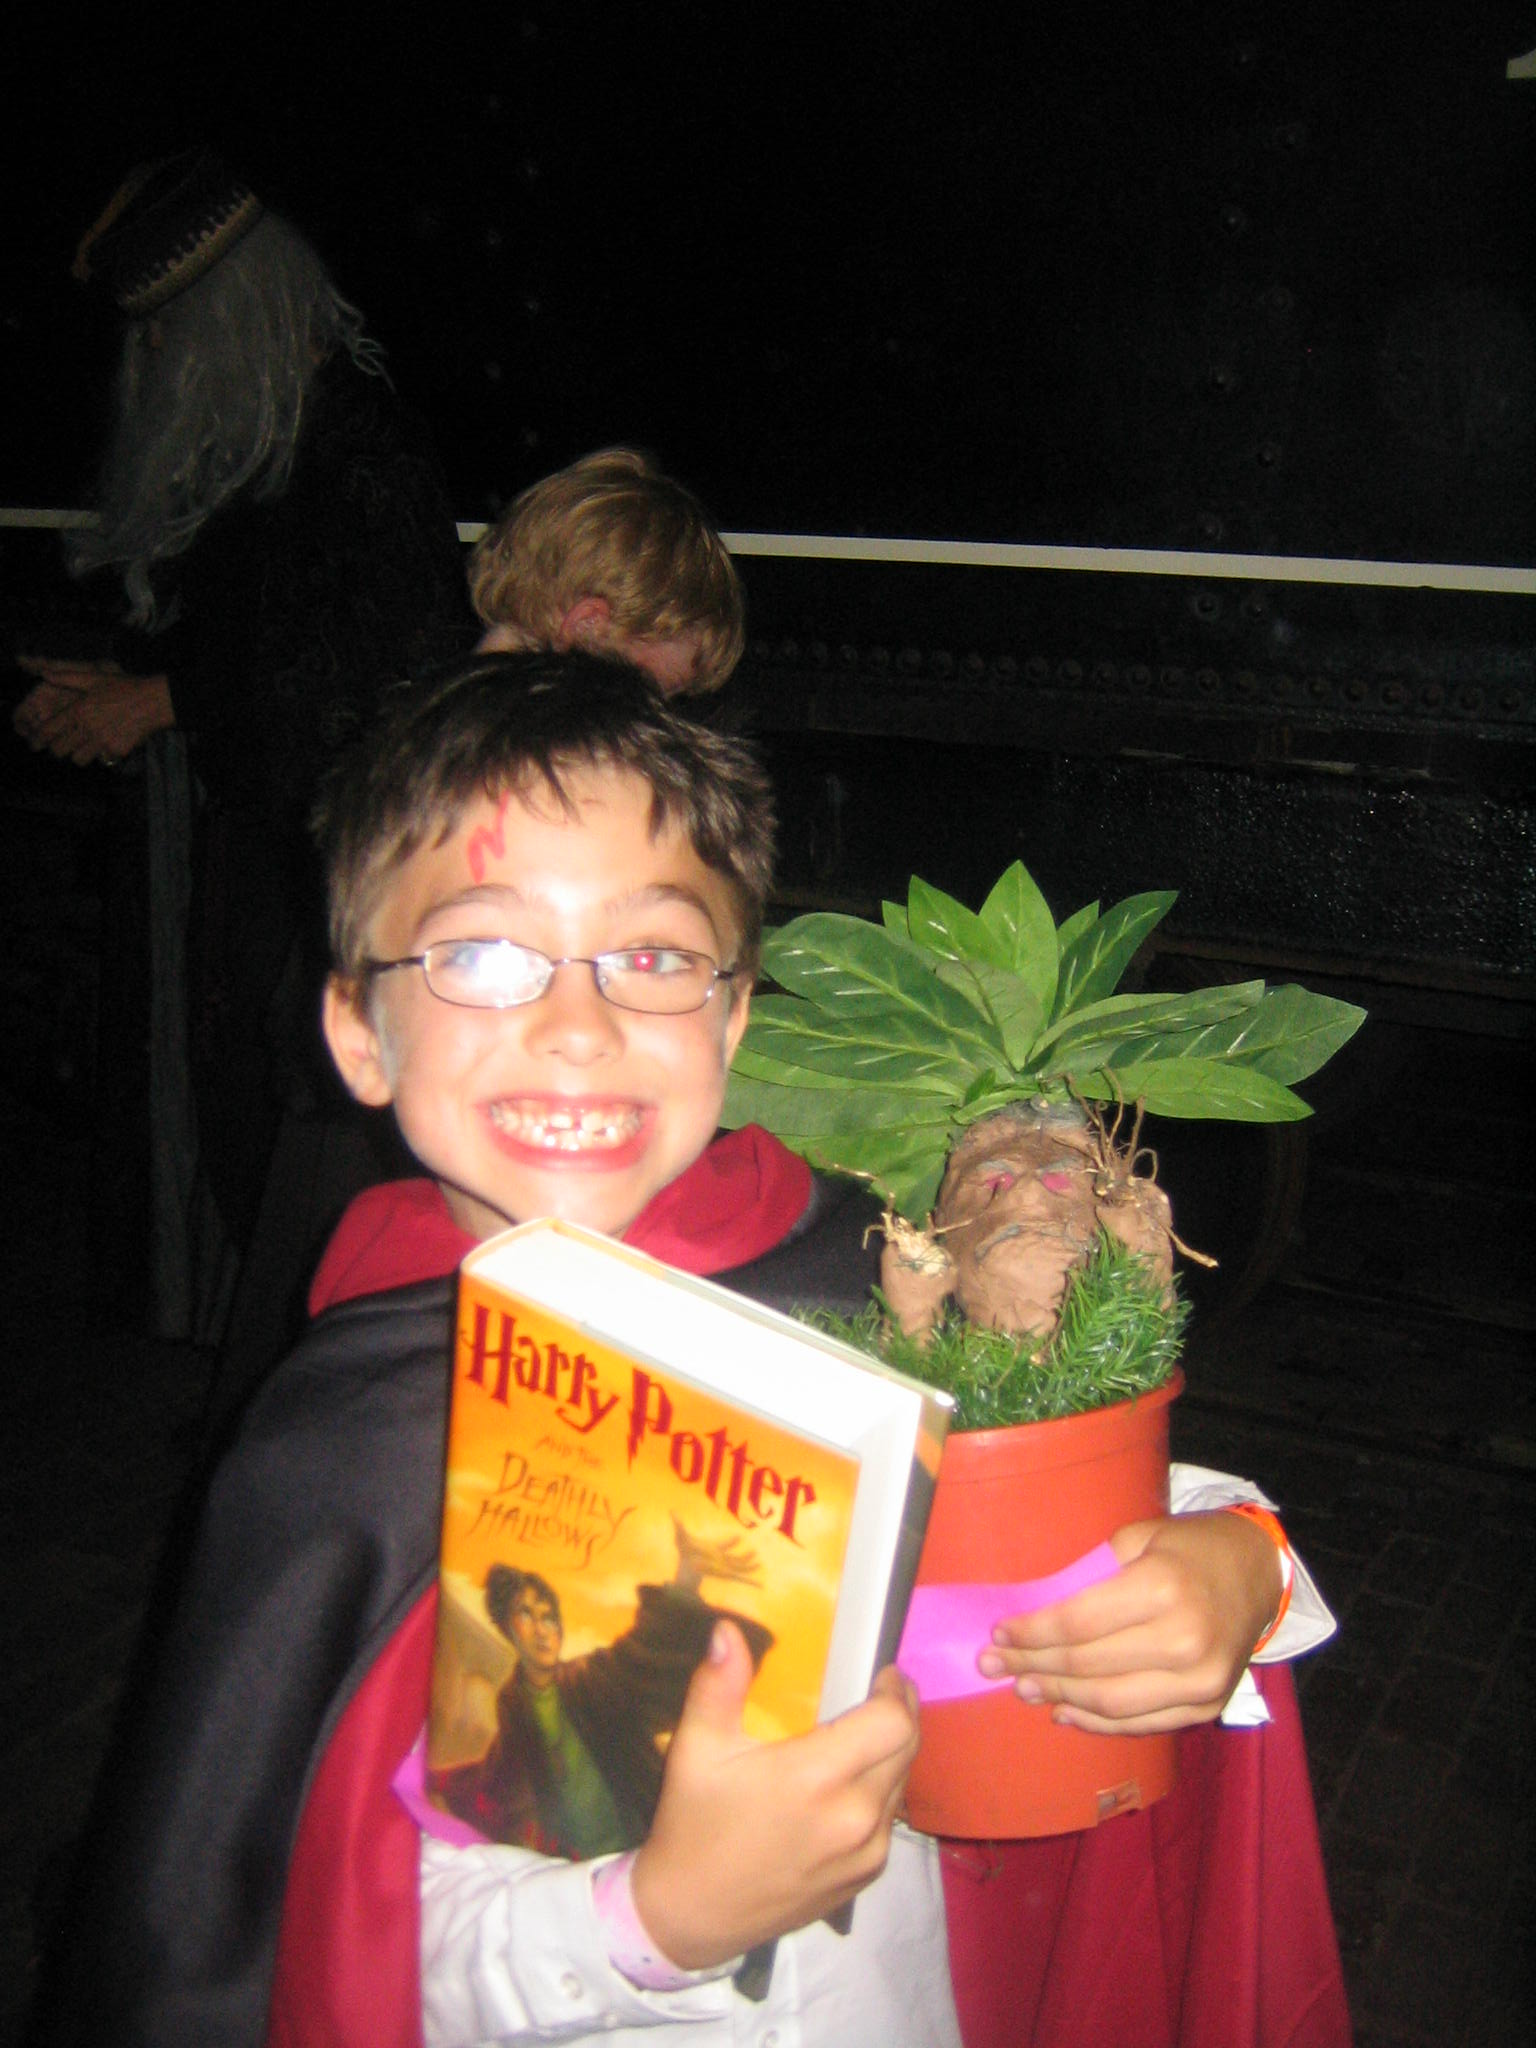 Harry,Book, plants.jpg